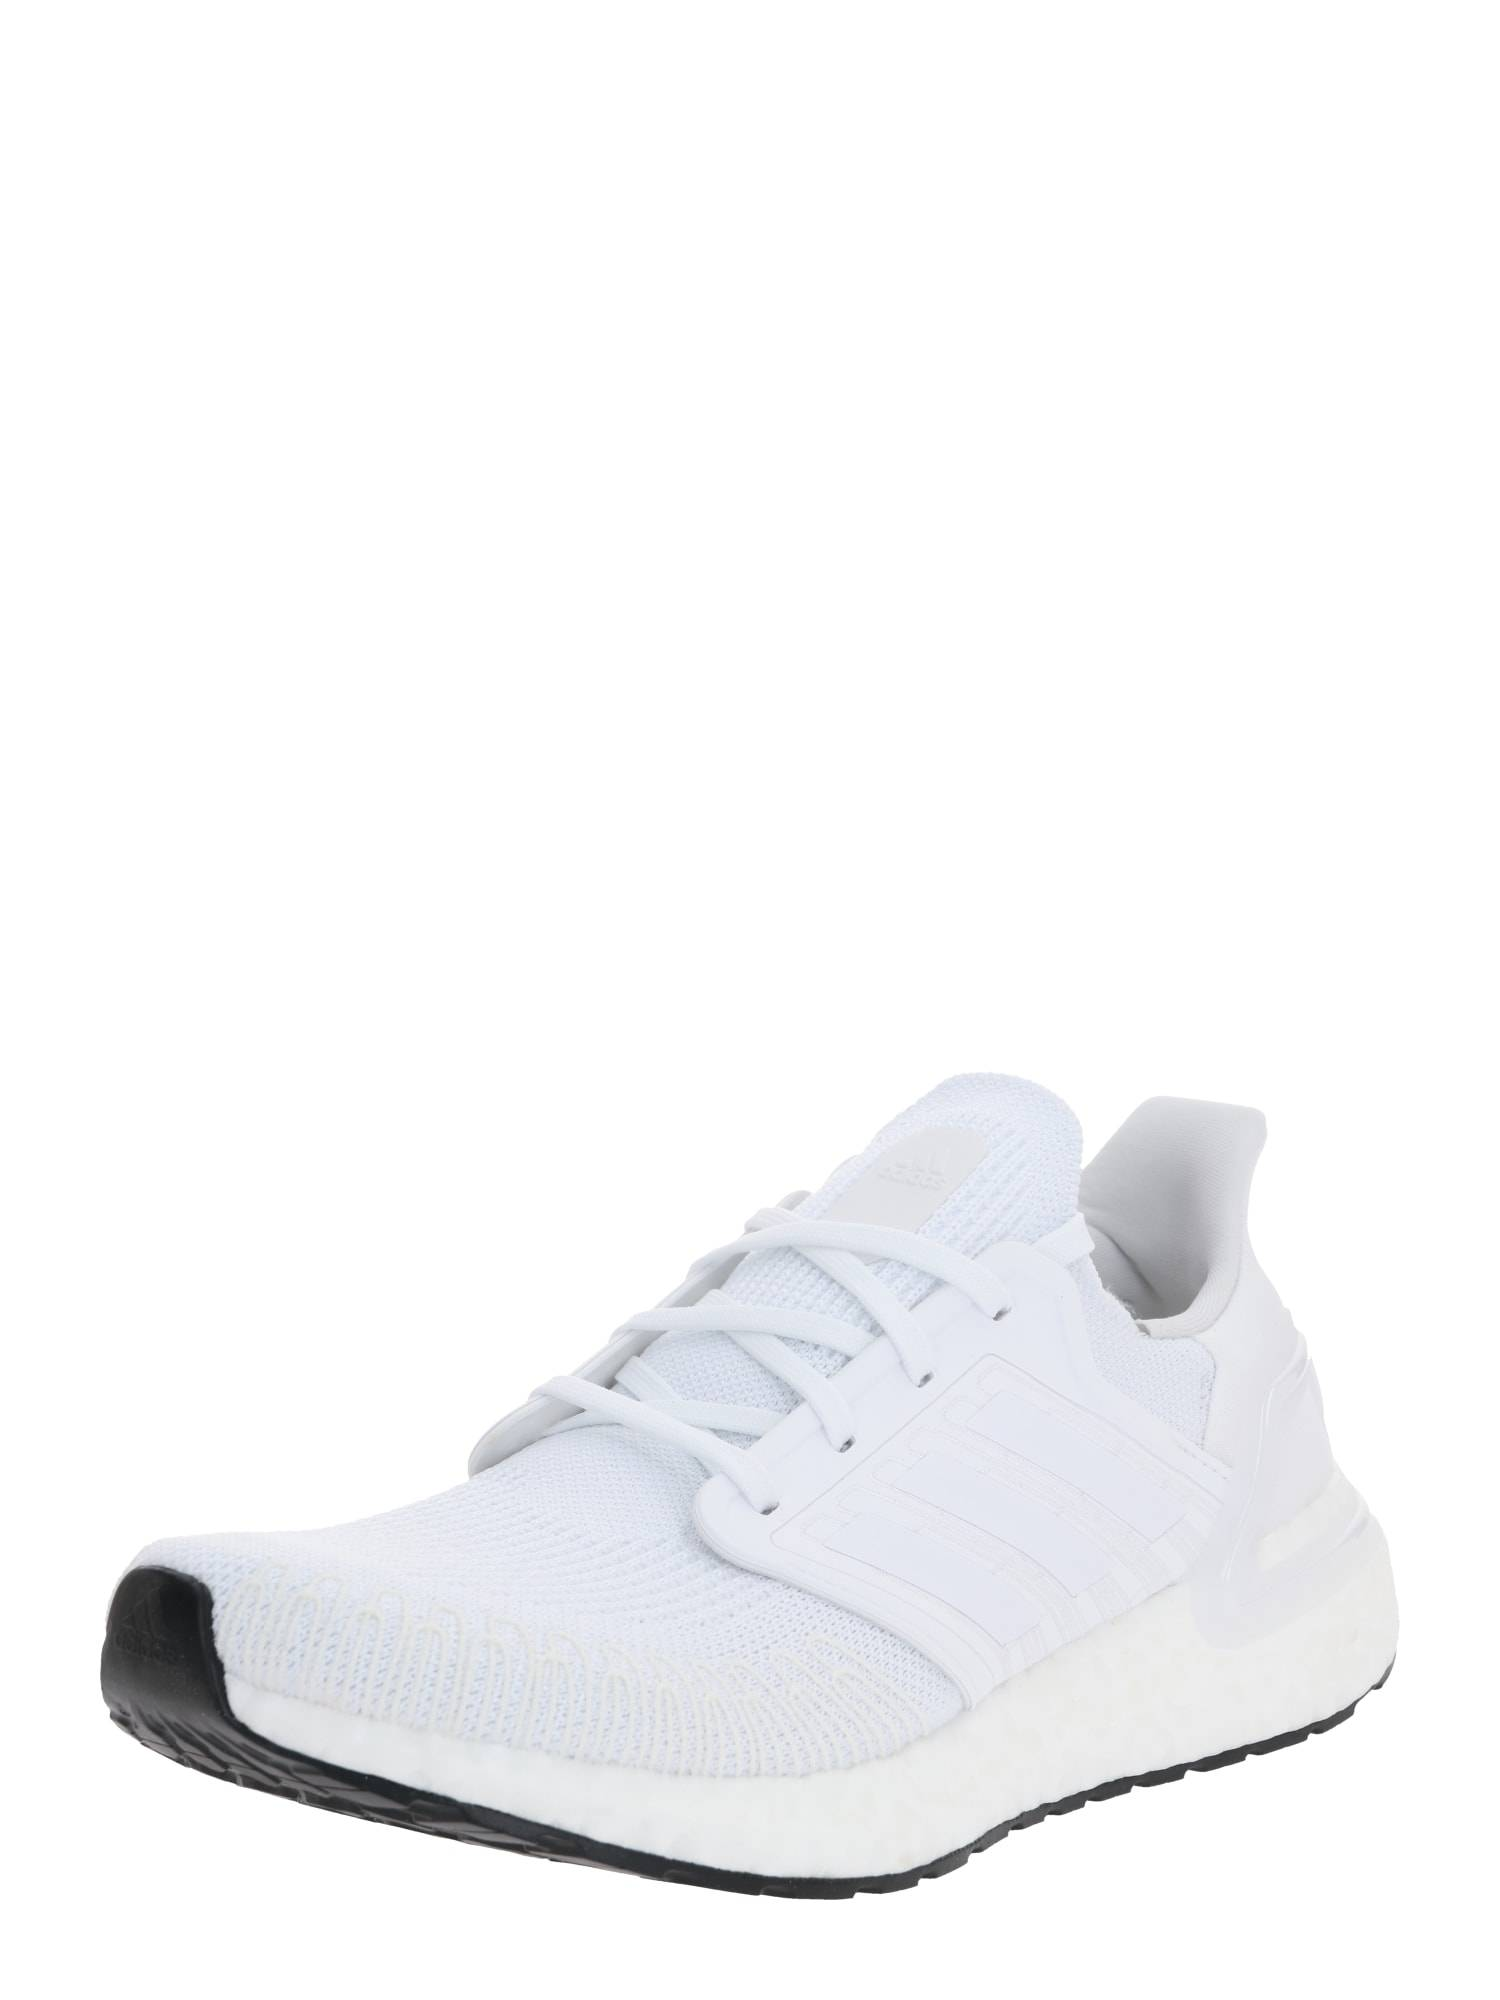 ADIDAS PERFORMANCE Chaussure de course 'Ultraboost 20'  - Blanc - Taille: 36.5-37 - male